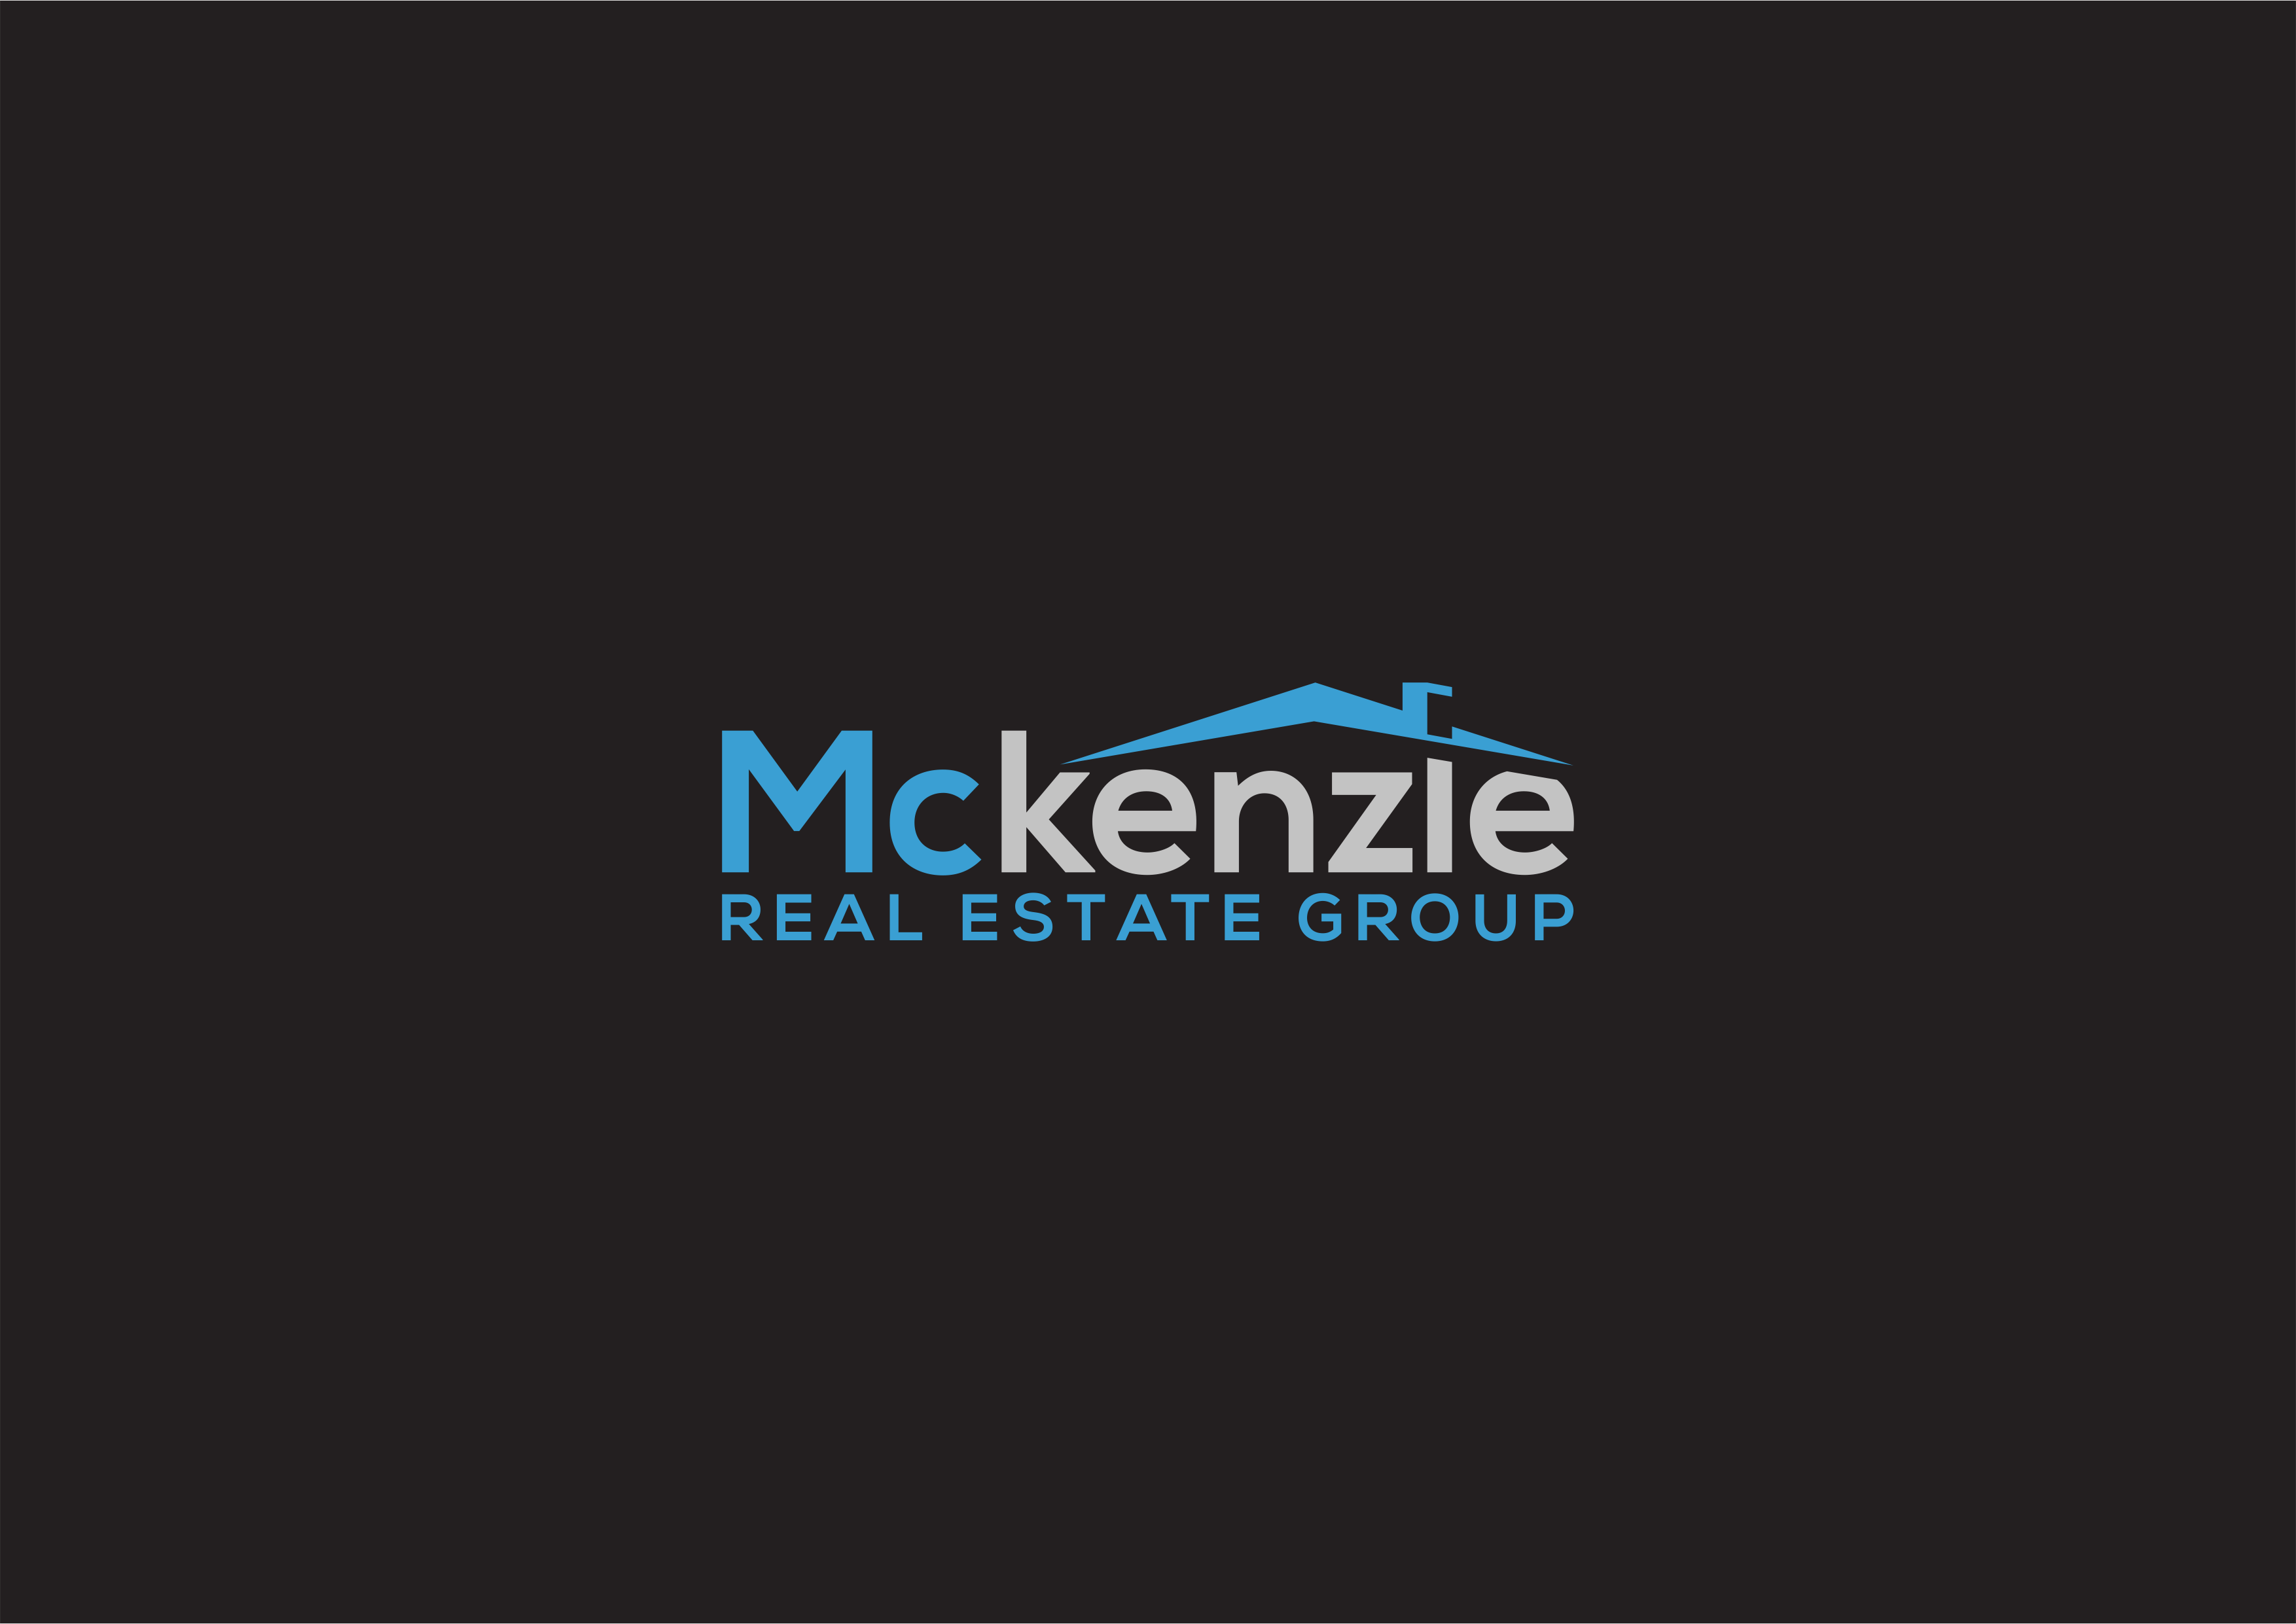 Mckenzie Real Estate